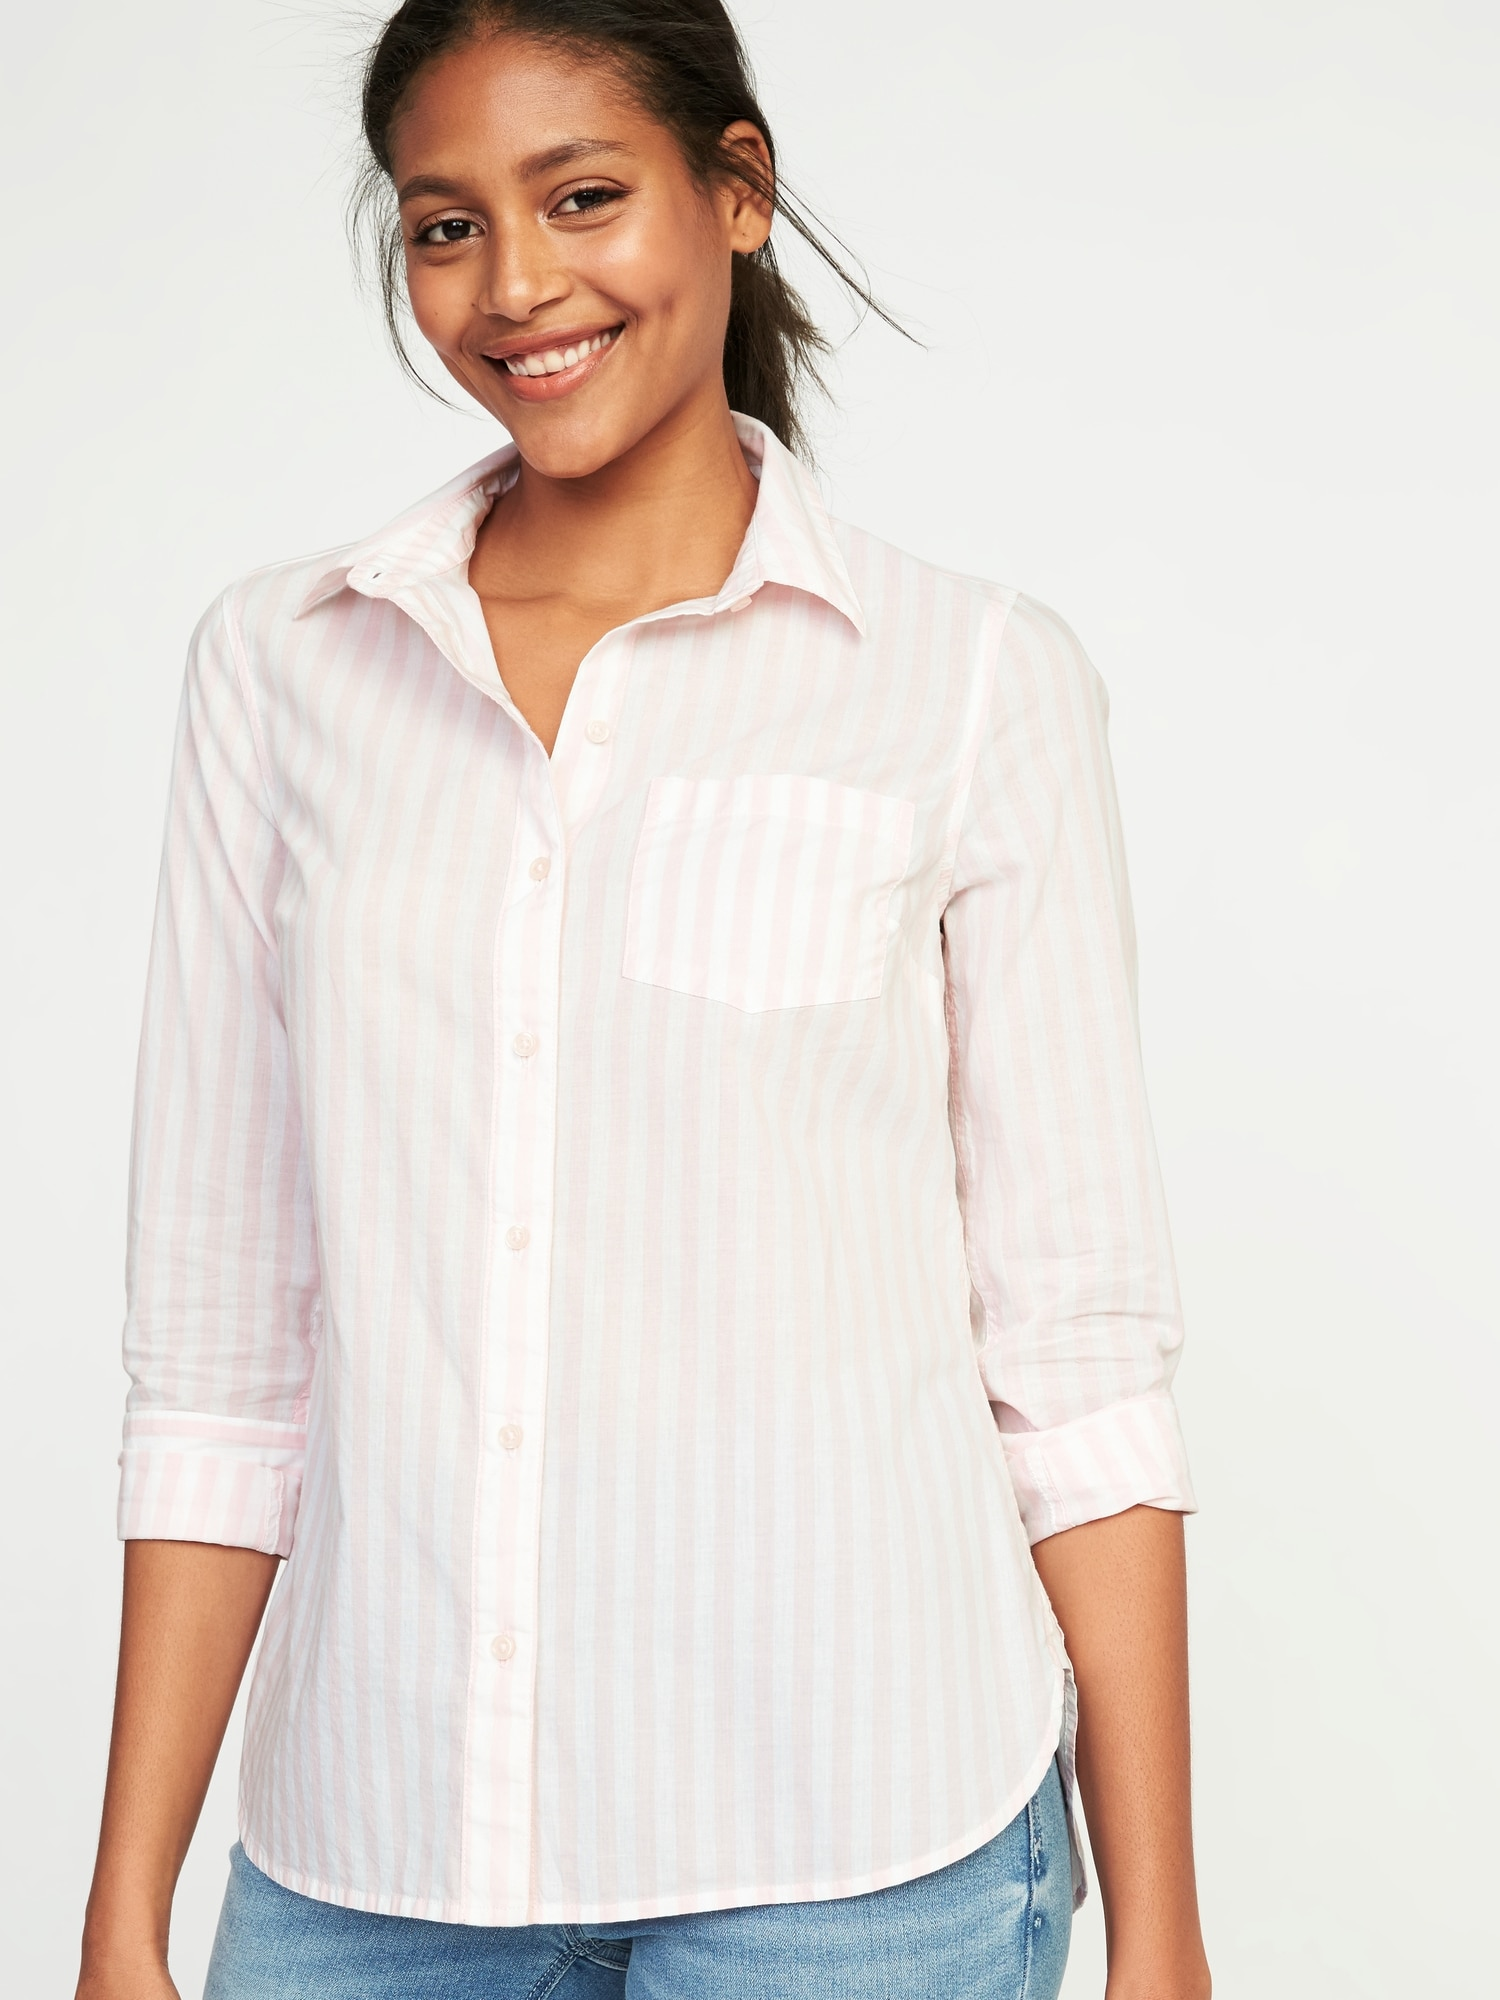 bce7224a05 Relaxed Classic Shirt for Women